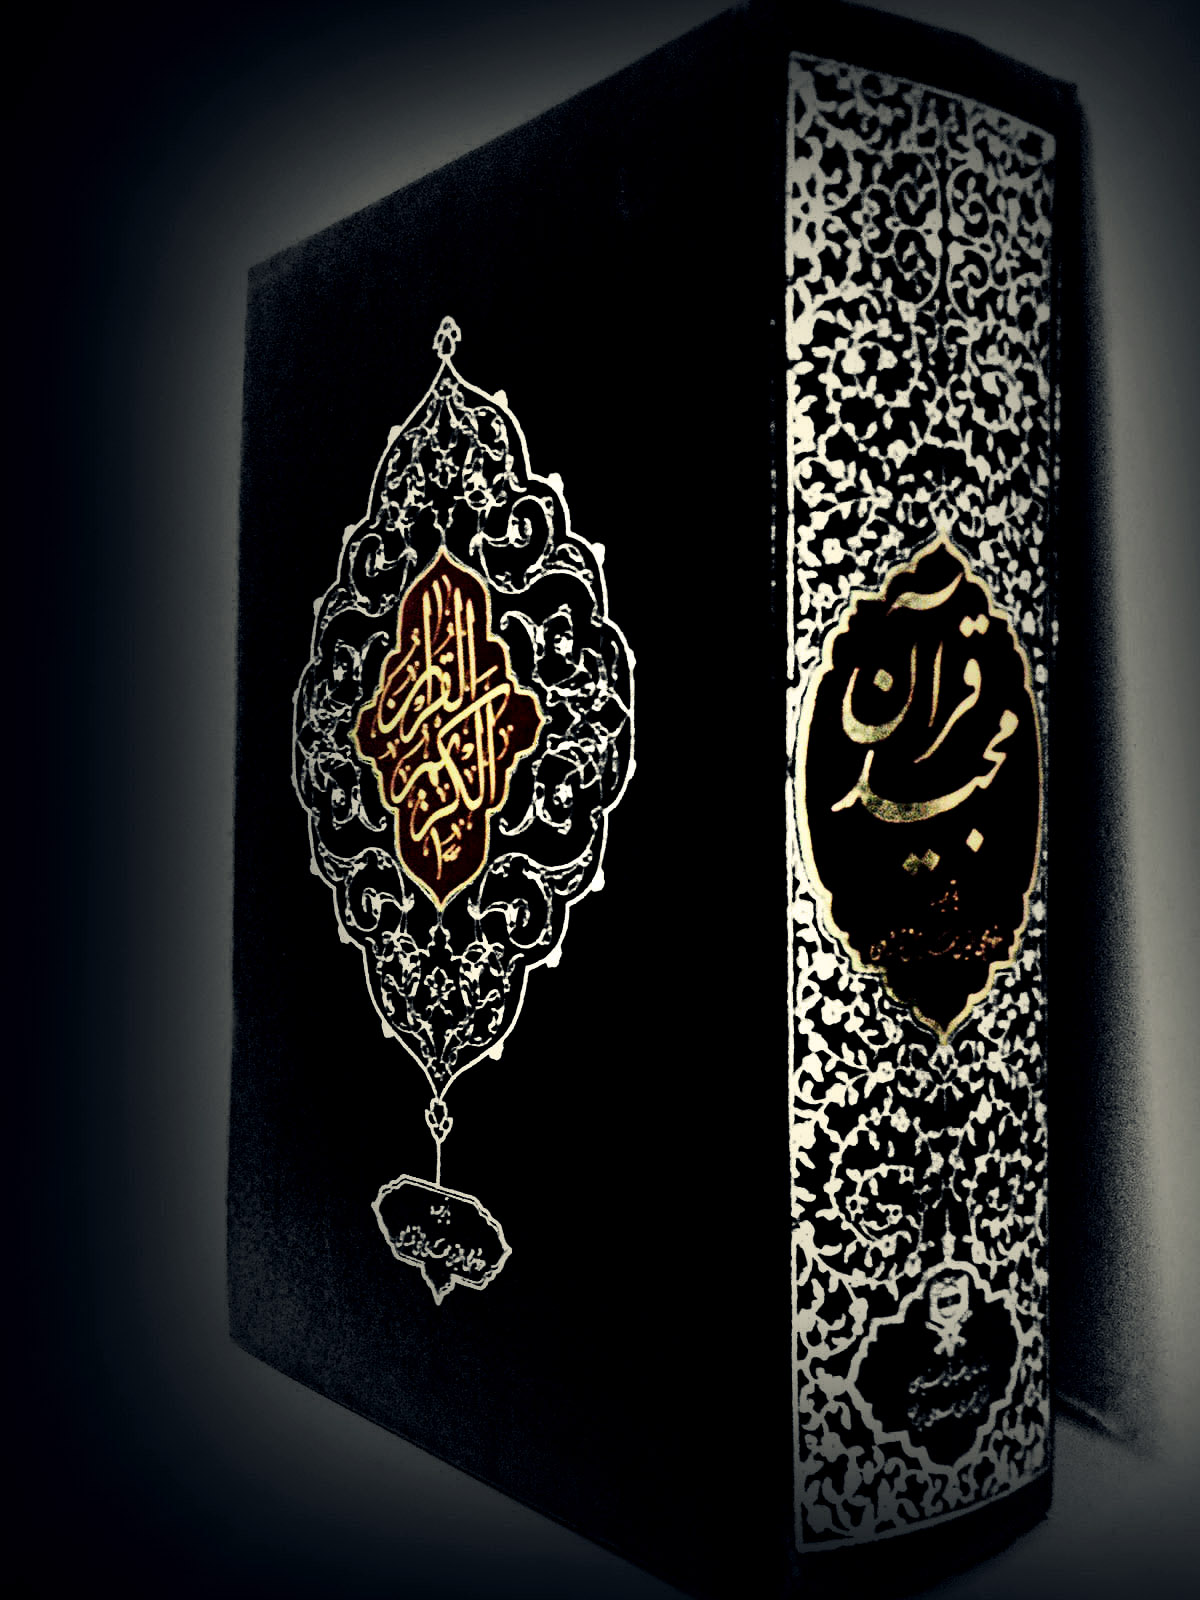 Voorkeur Islamic Wallpaper Quran - Islam and Islamic Laws #RG42